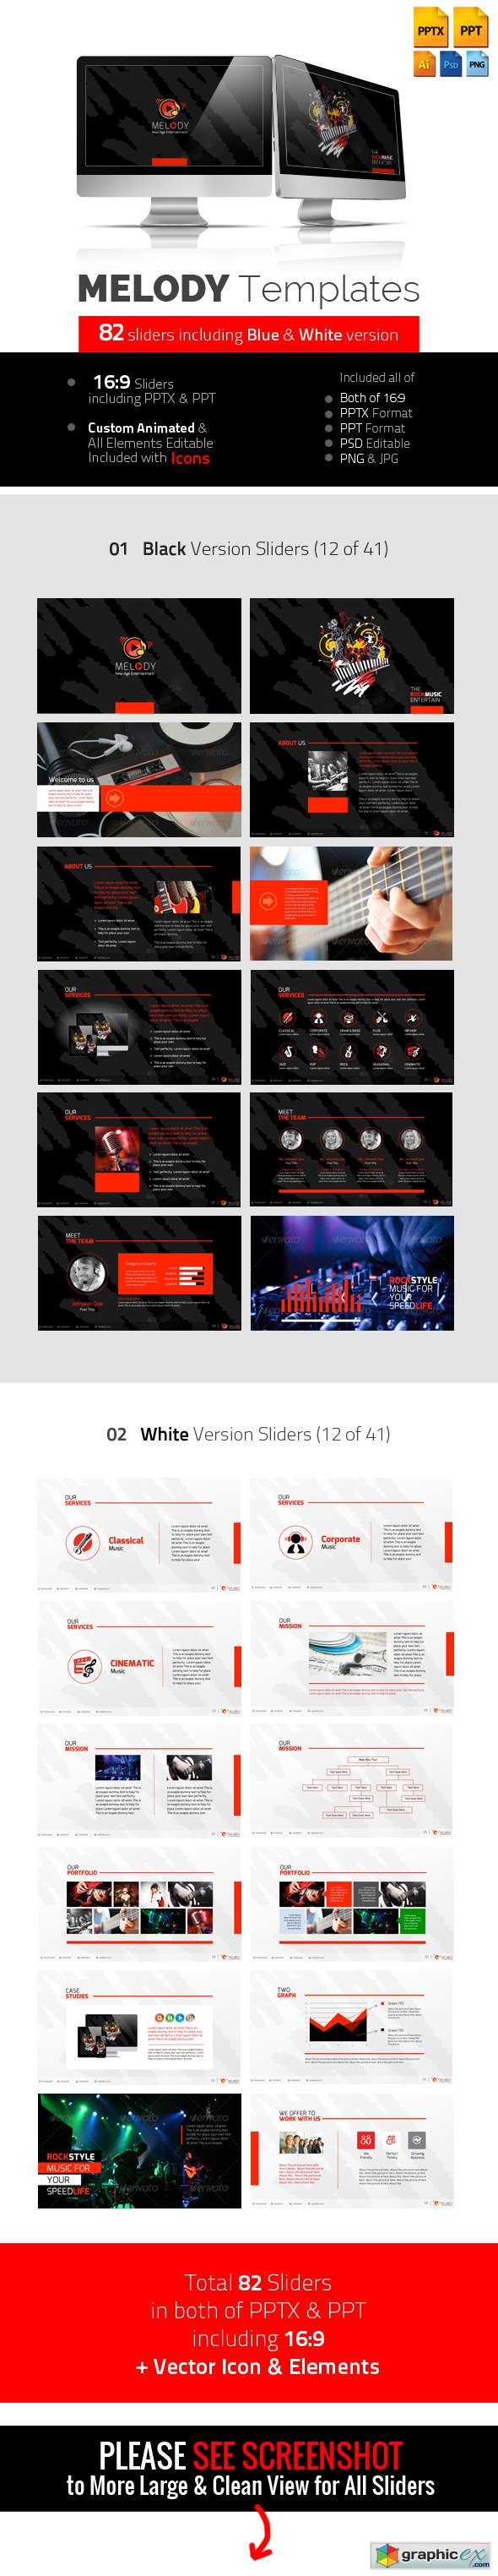 Melody Professional Multimedia Templates